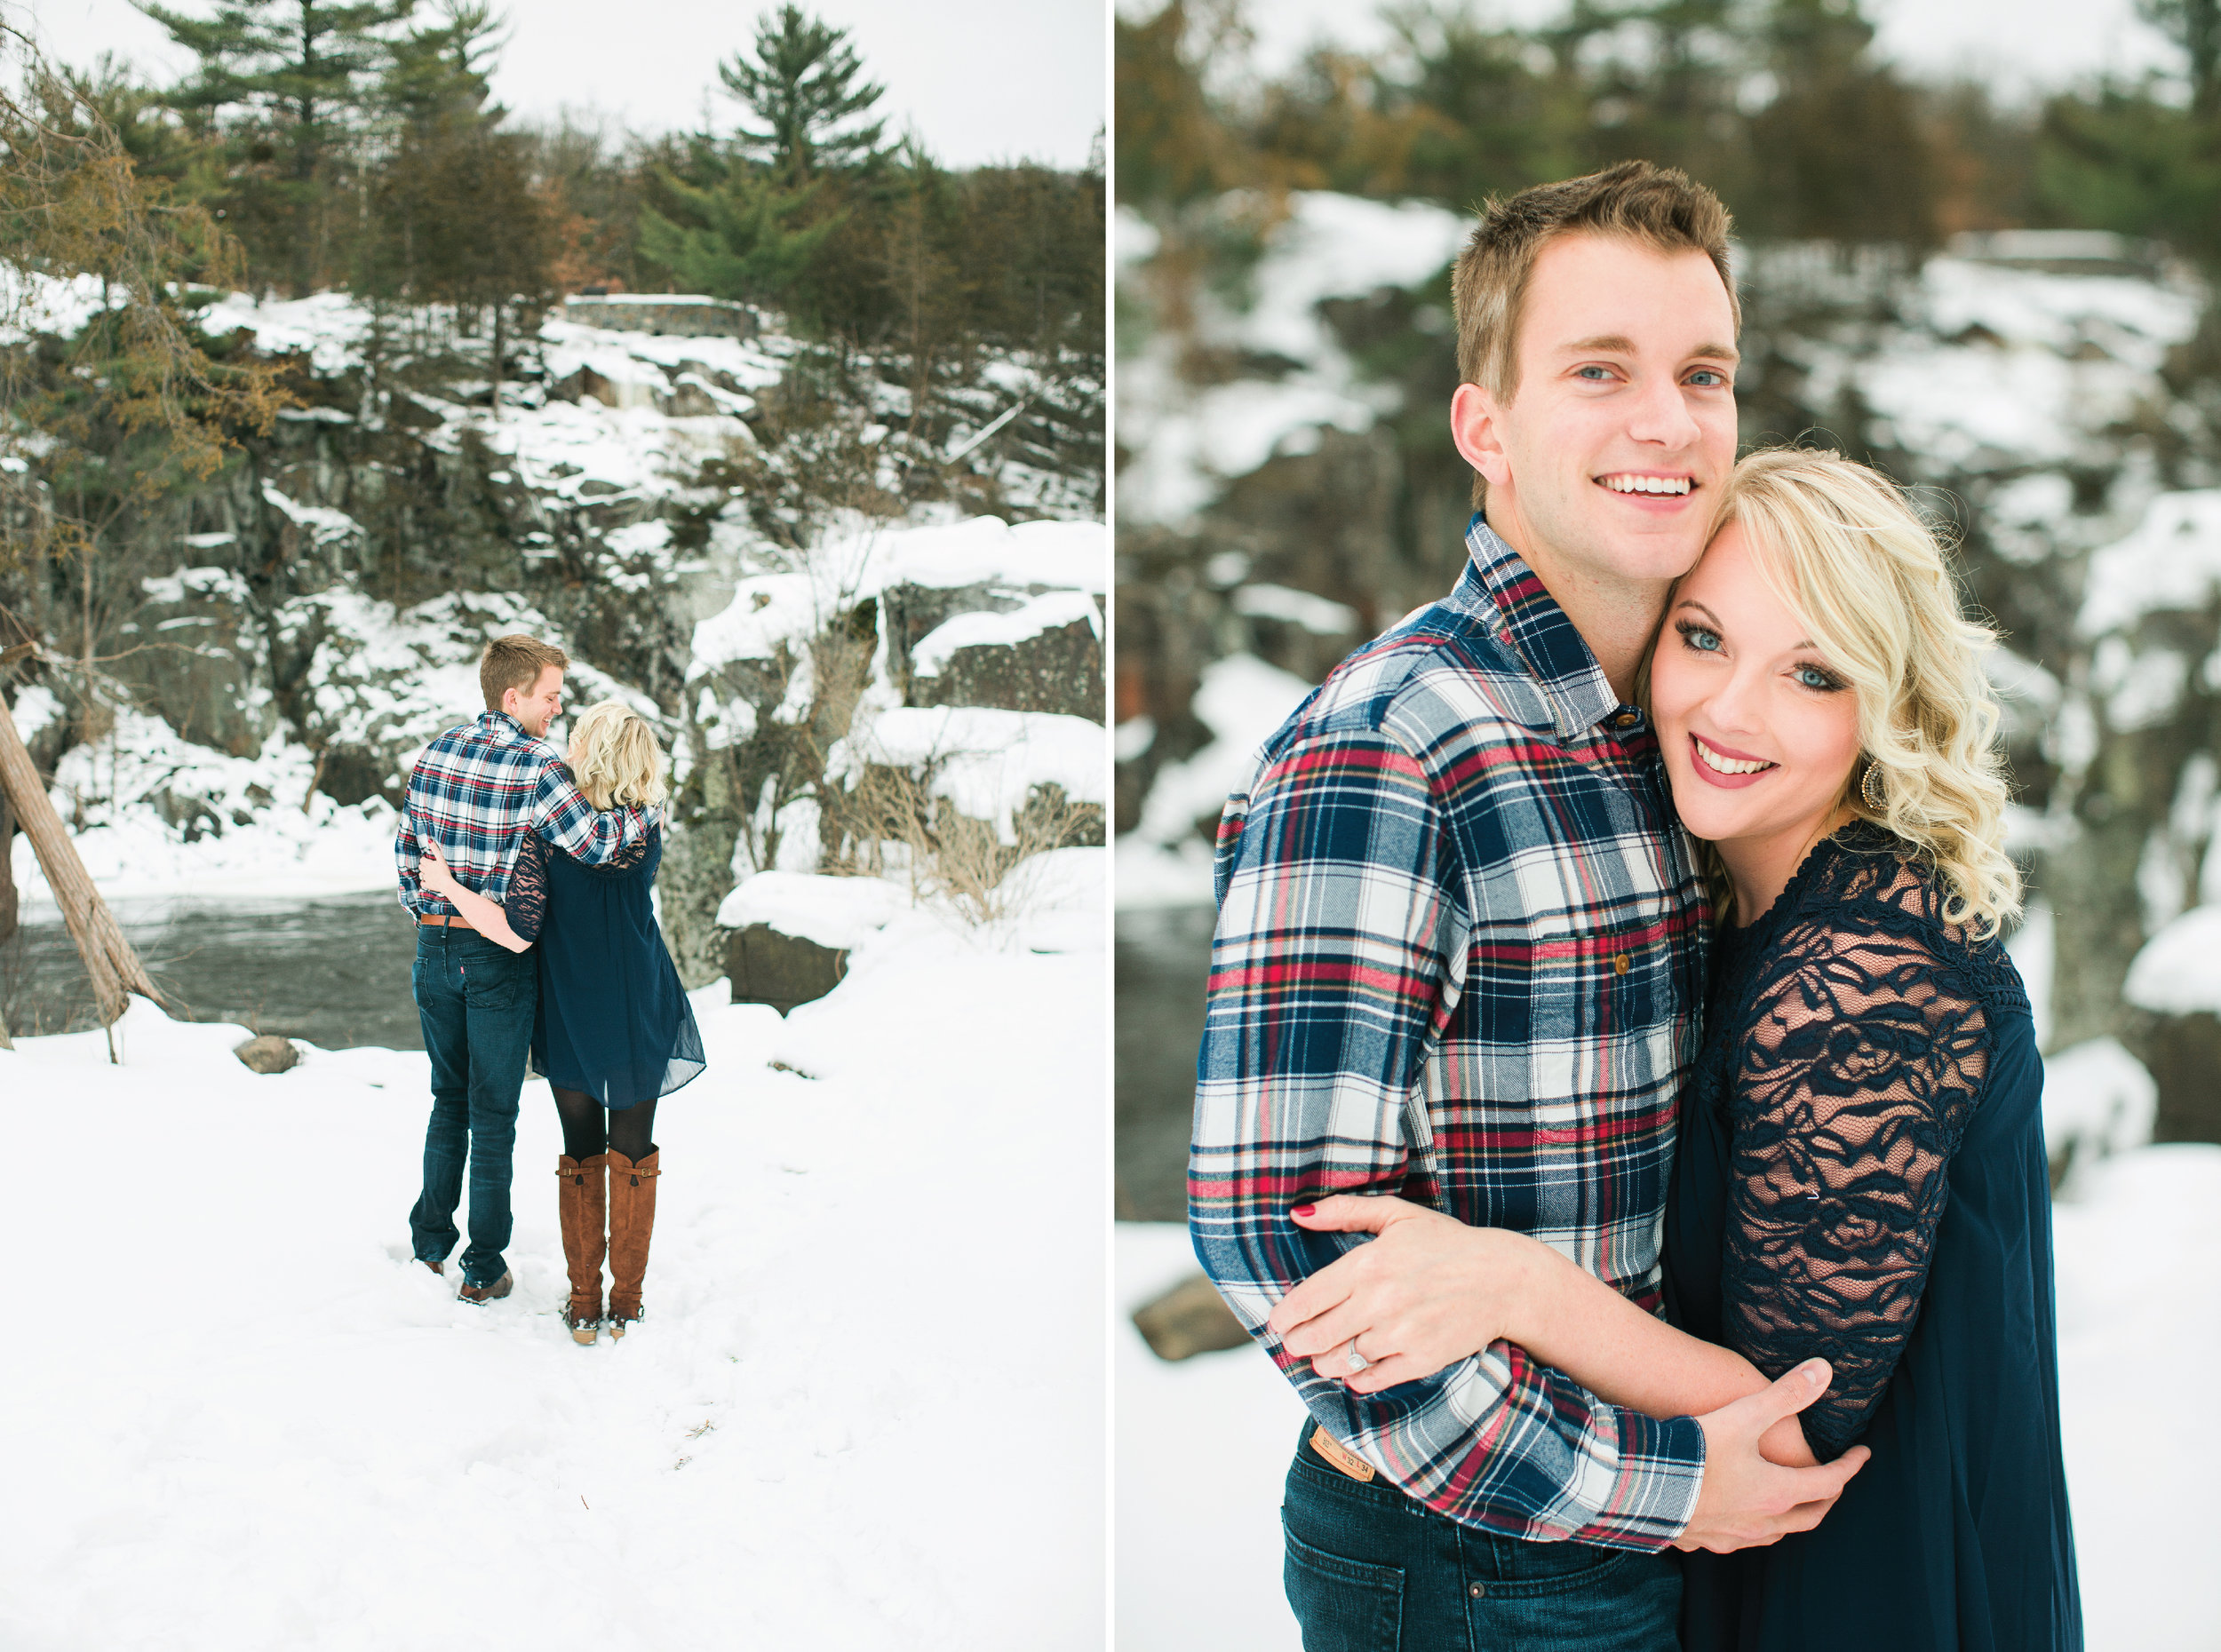 Minnesota snowy winter engagement photos in Taylors Falls Minnesota smiling and joyfully enjoying the scenery